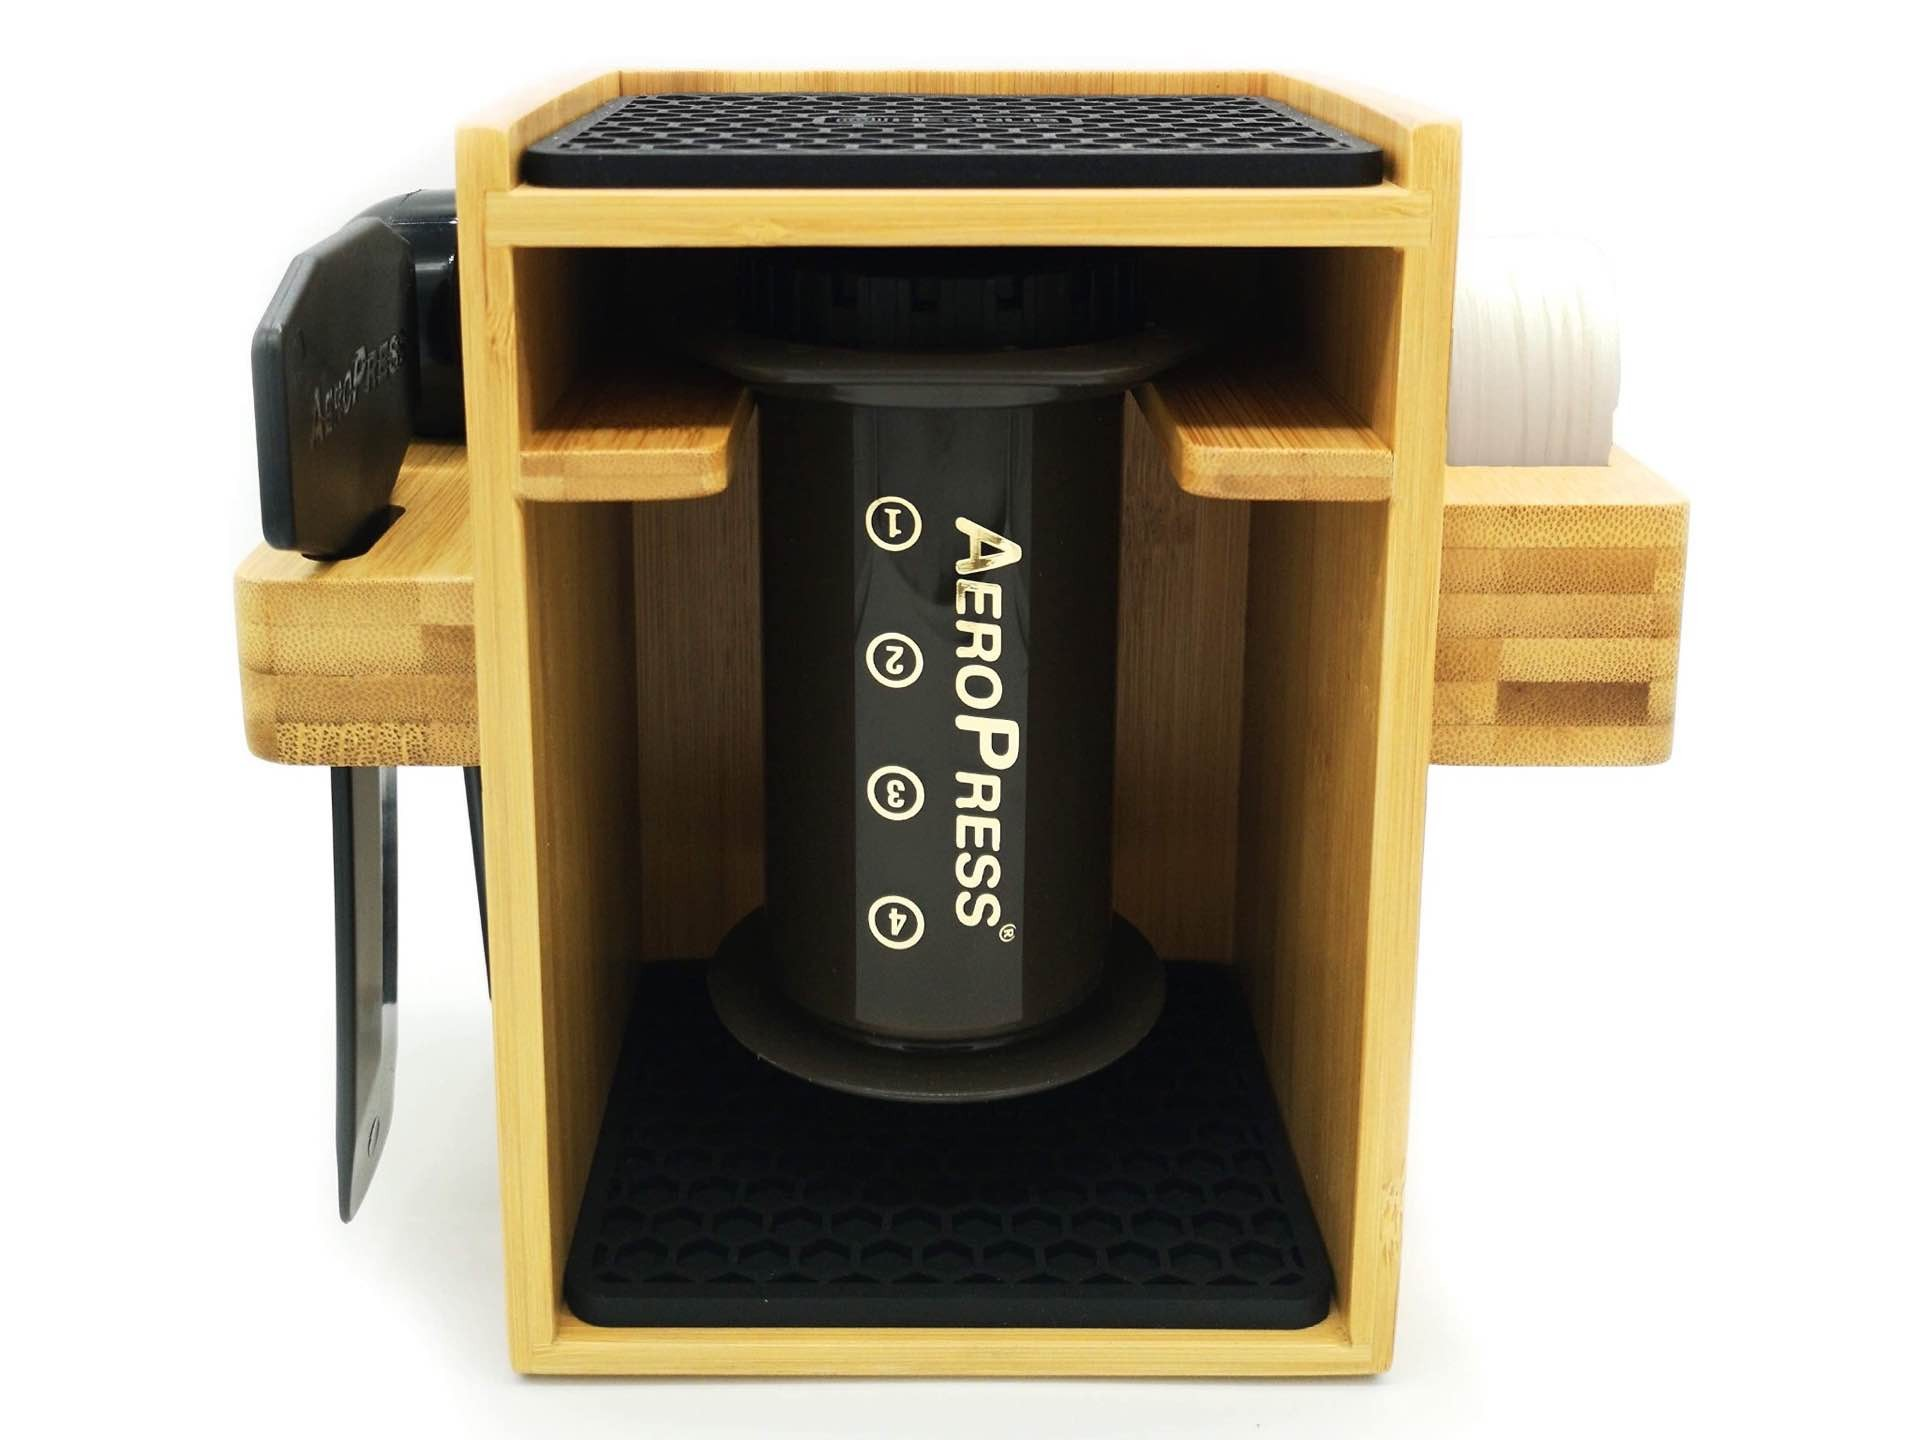 Hexnub's compact AeroPress organizer/stand/caddy, made from bamboo. ($32)